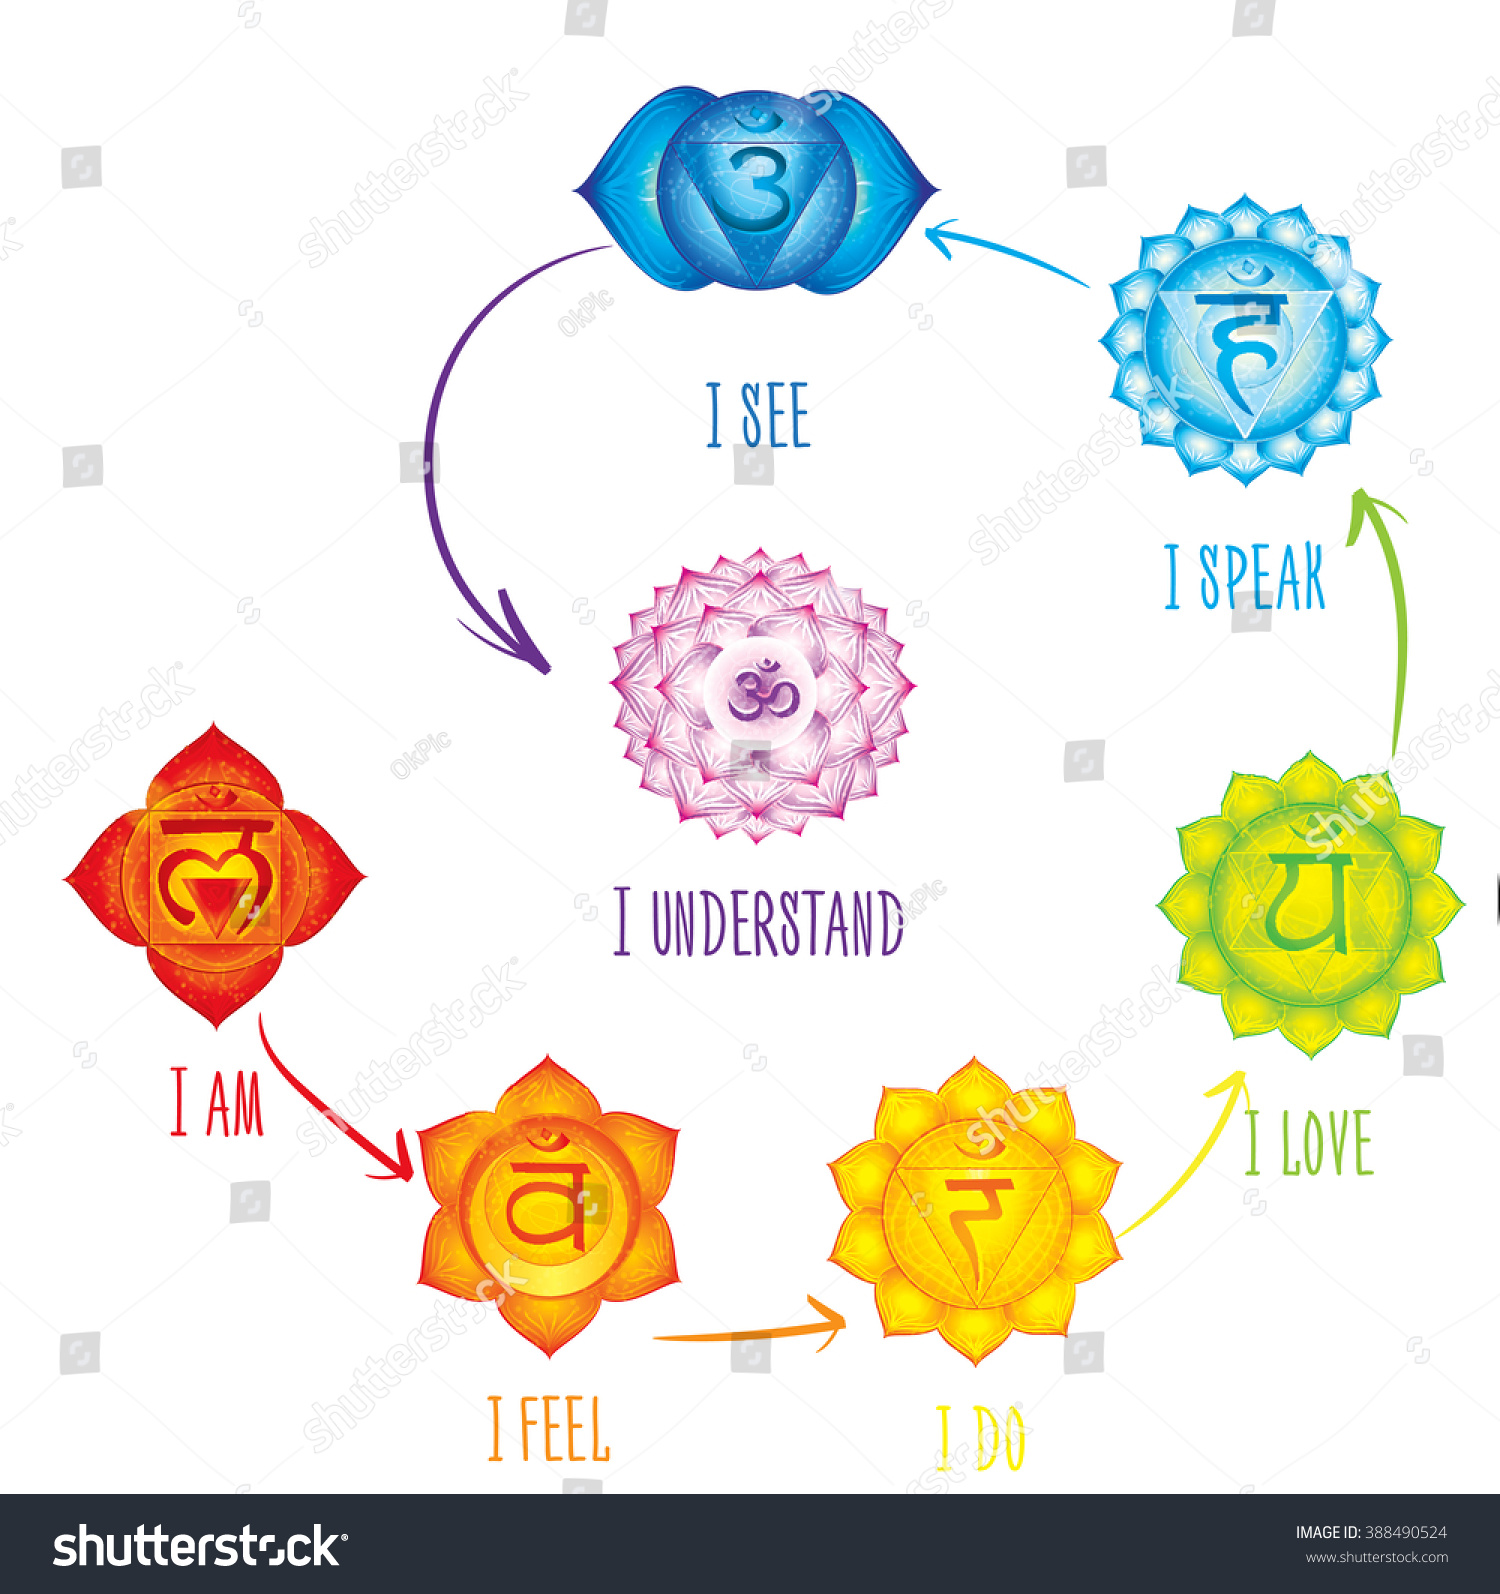 Poster design meaning - Chakras Meaning Poster Concept Used In Hinduism Buddhism And Ayurveda For Design